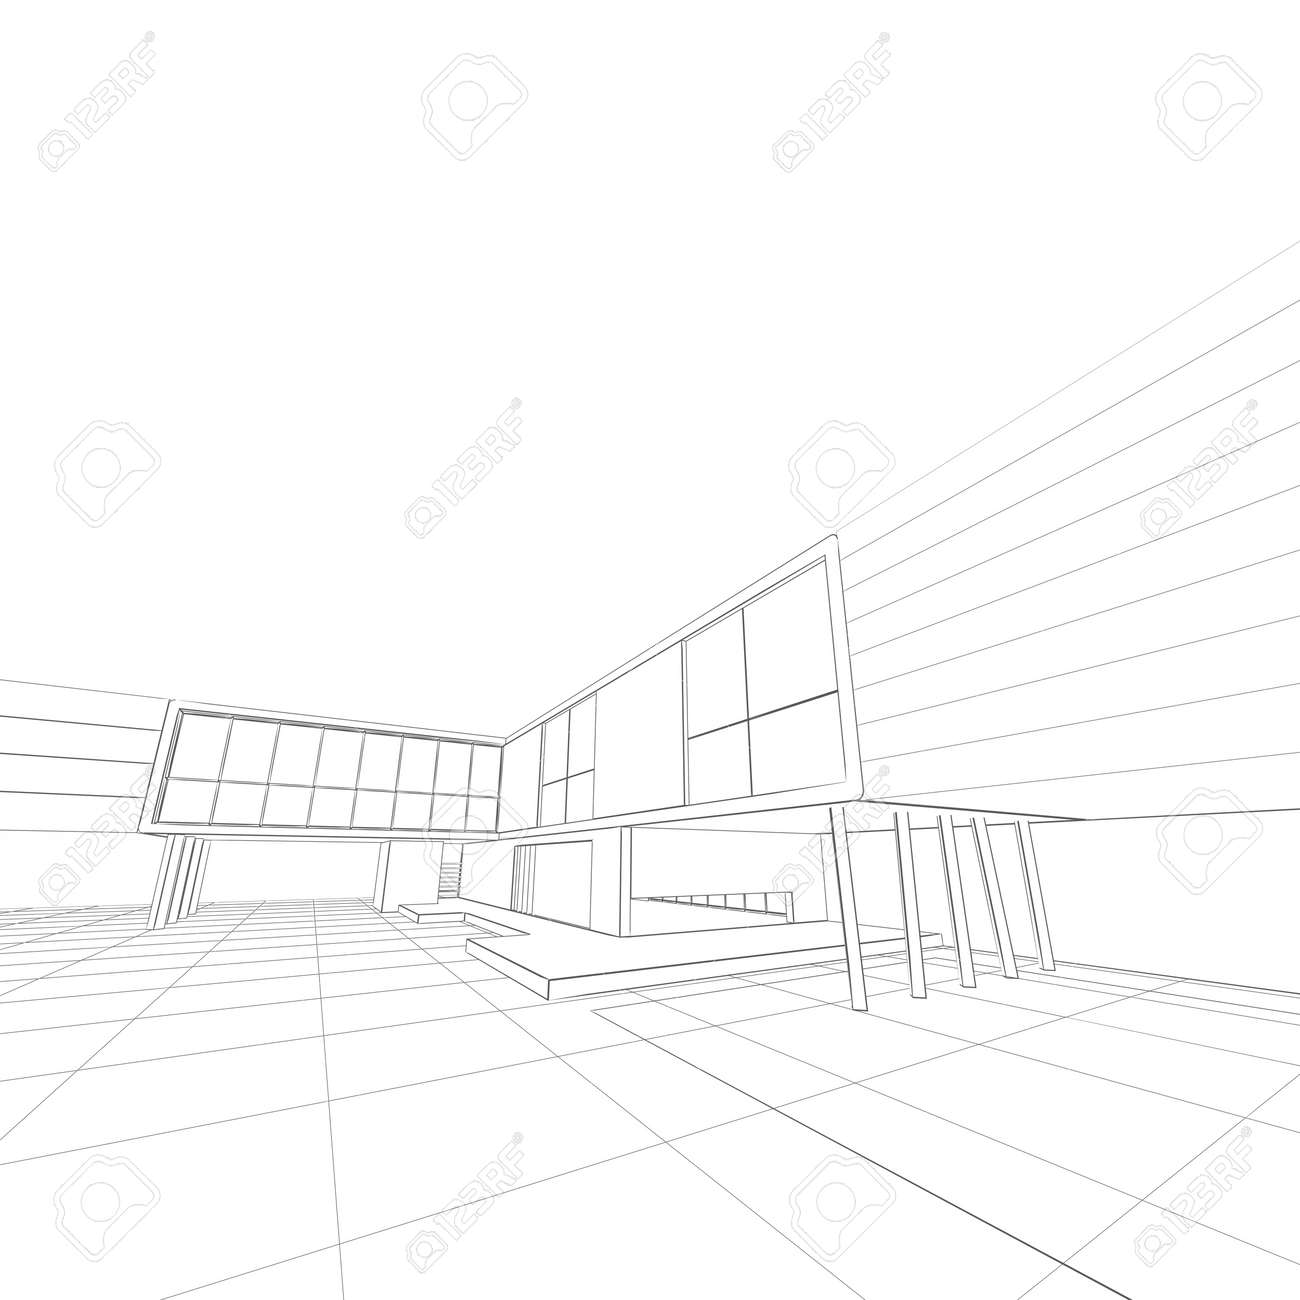 House blueprint white isolated building design and 3d model stock house blueprint white isolated building design and 3d model my own stock photo 18849645 malvernweather Images